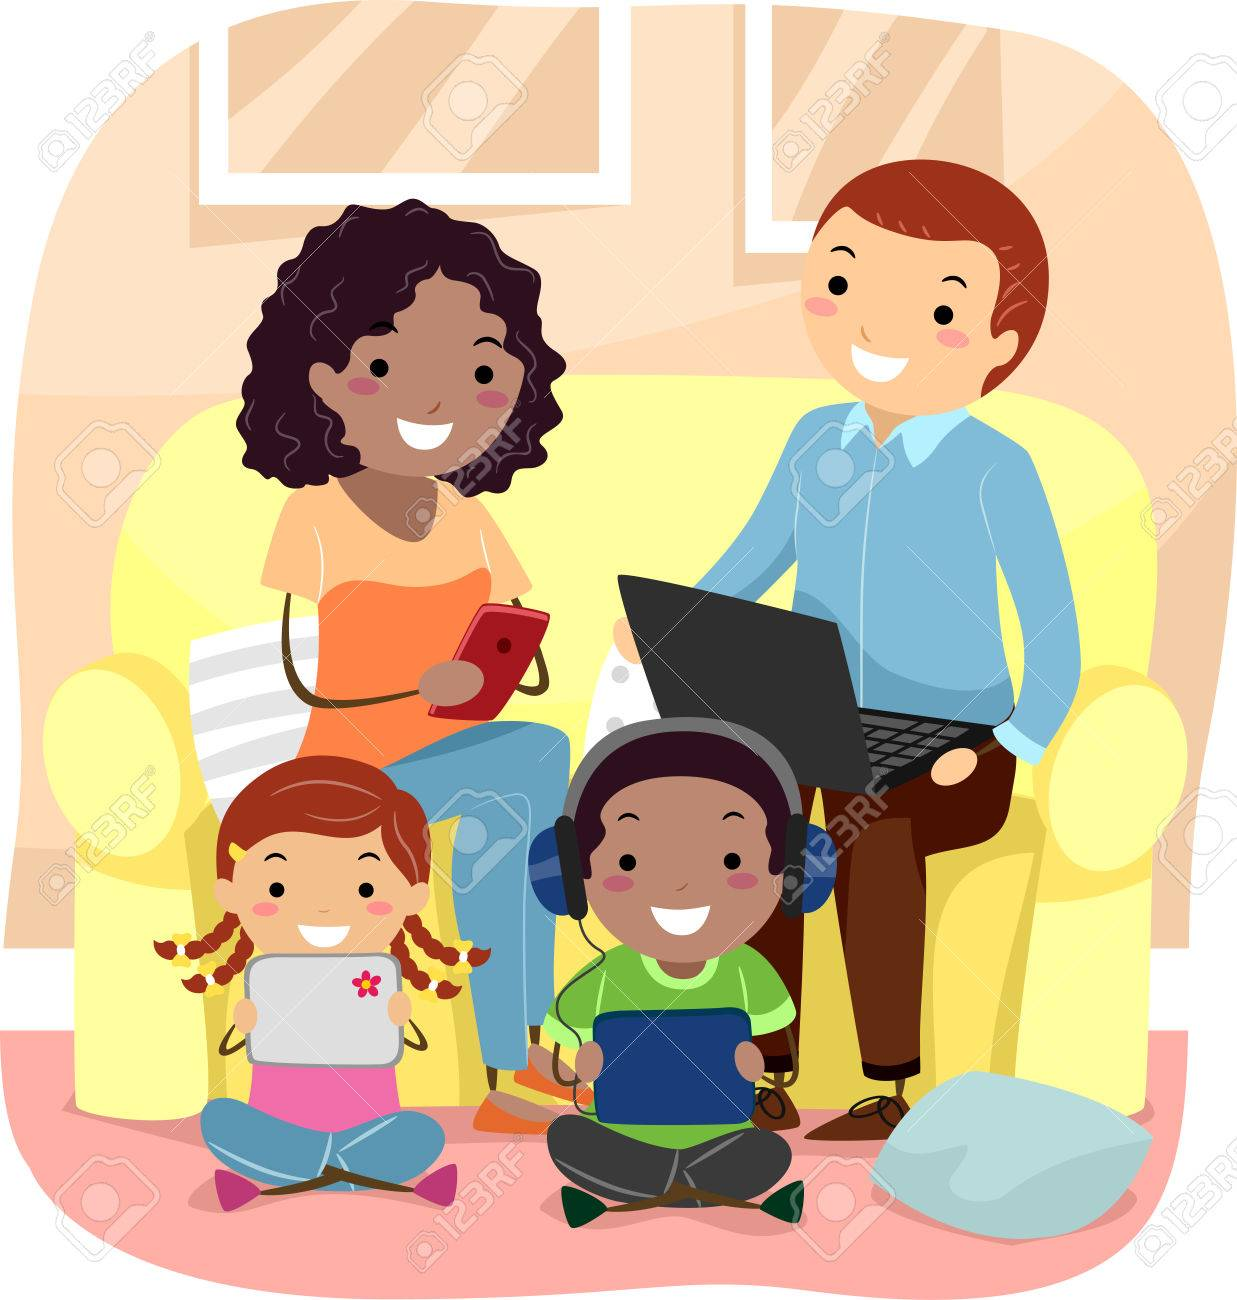 Family Room Clipart Stickman Illustration Of A Using Their Individual Gadgets In The Living